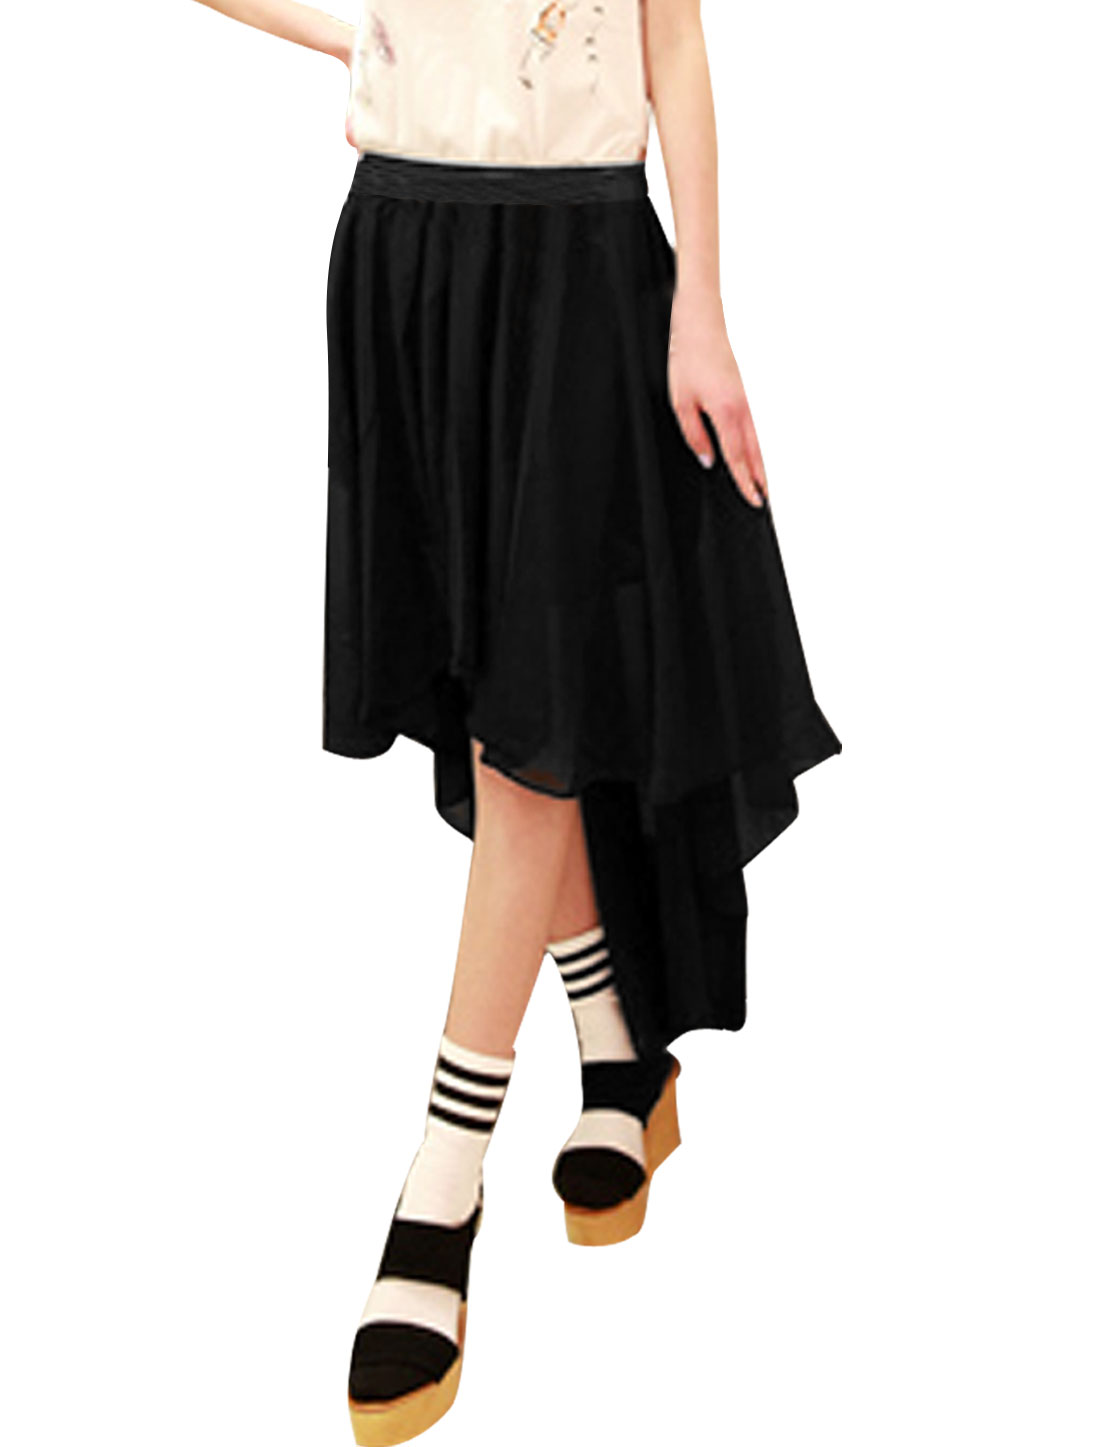 buy wholesale black chiffon high low skirt from